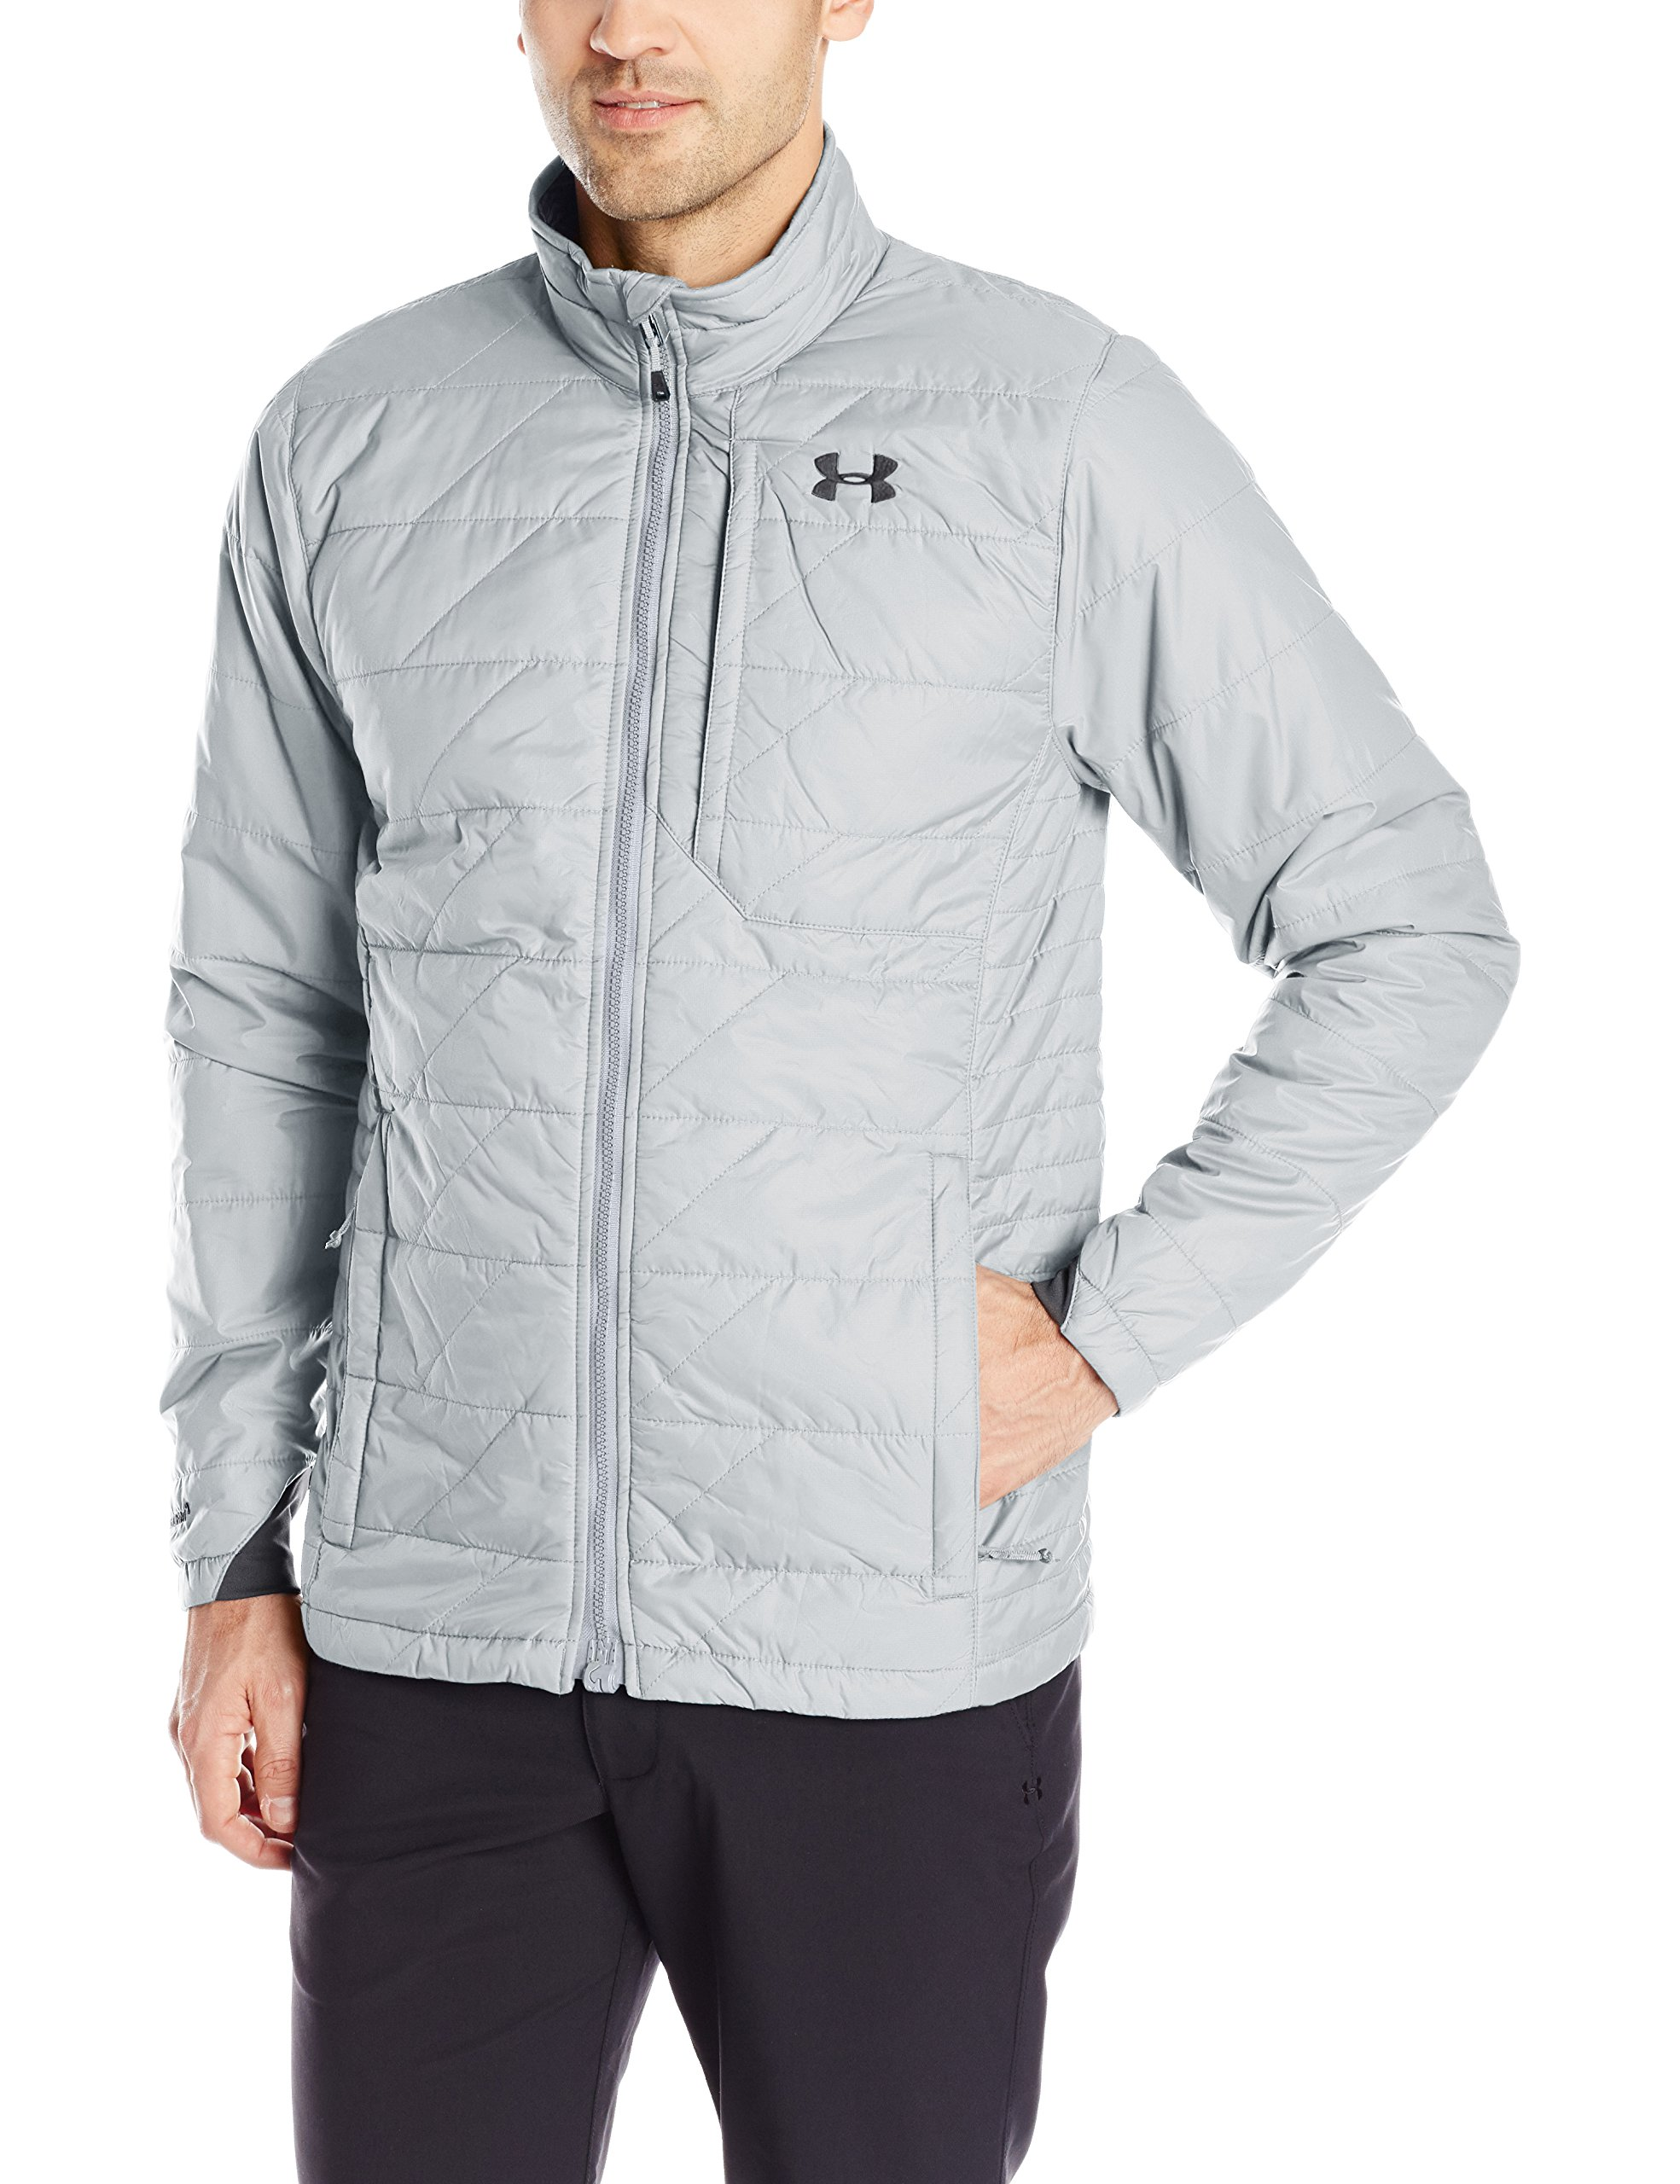 Under Armour Men's Storm ColdGear Infrared Micro Jacket, Steel/Black, XX-Large